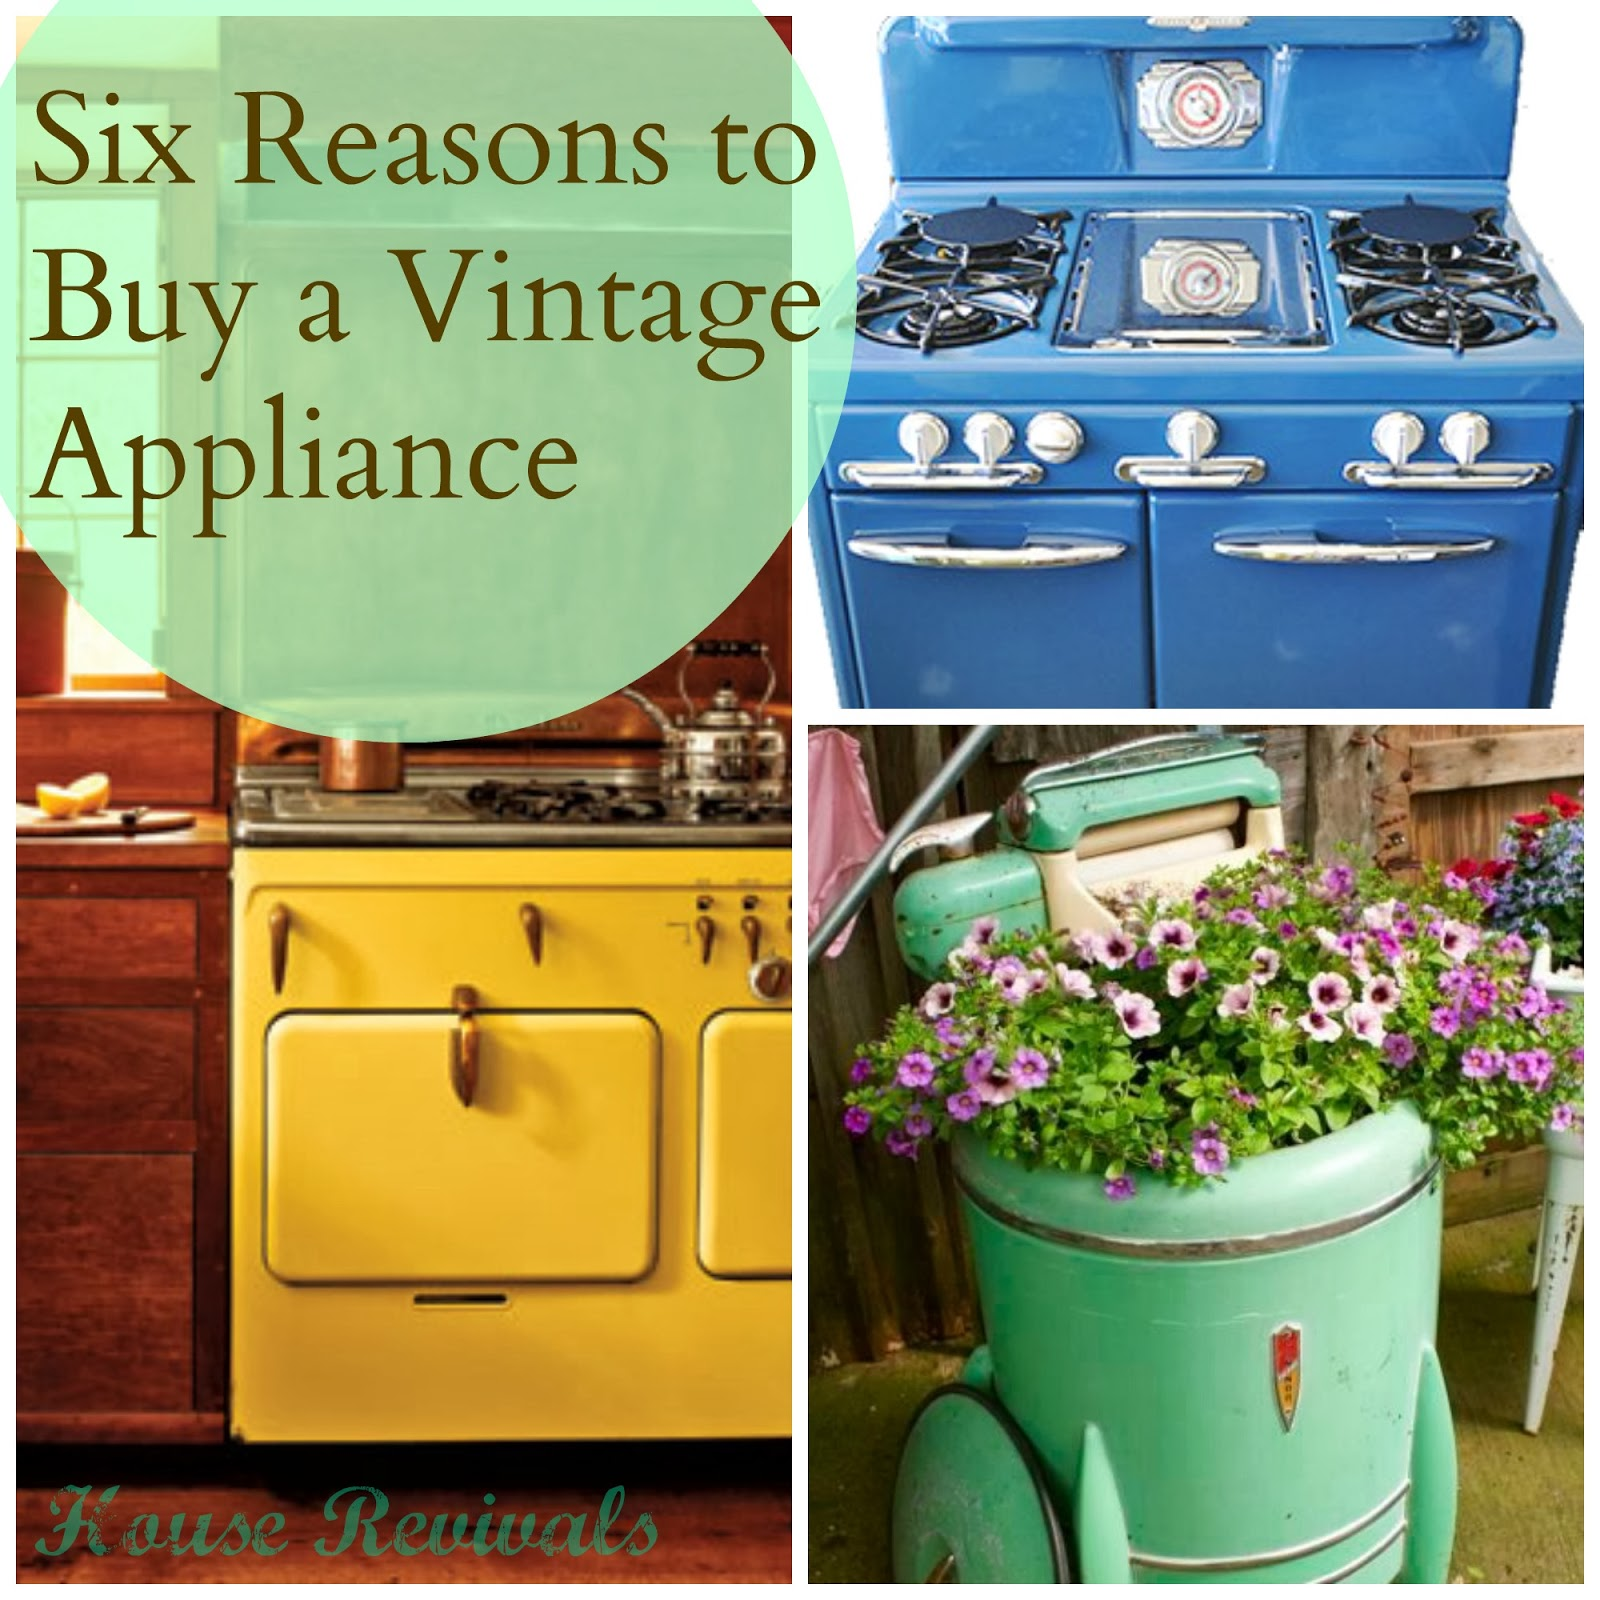 Six Reasons To Buy A Vintage Appliance For Your Home